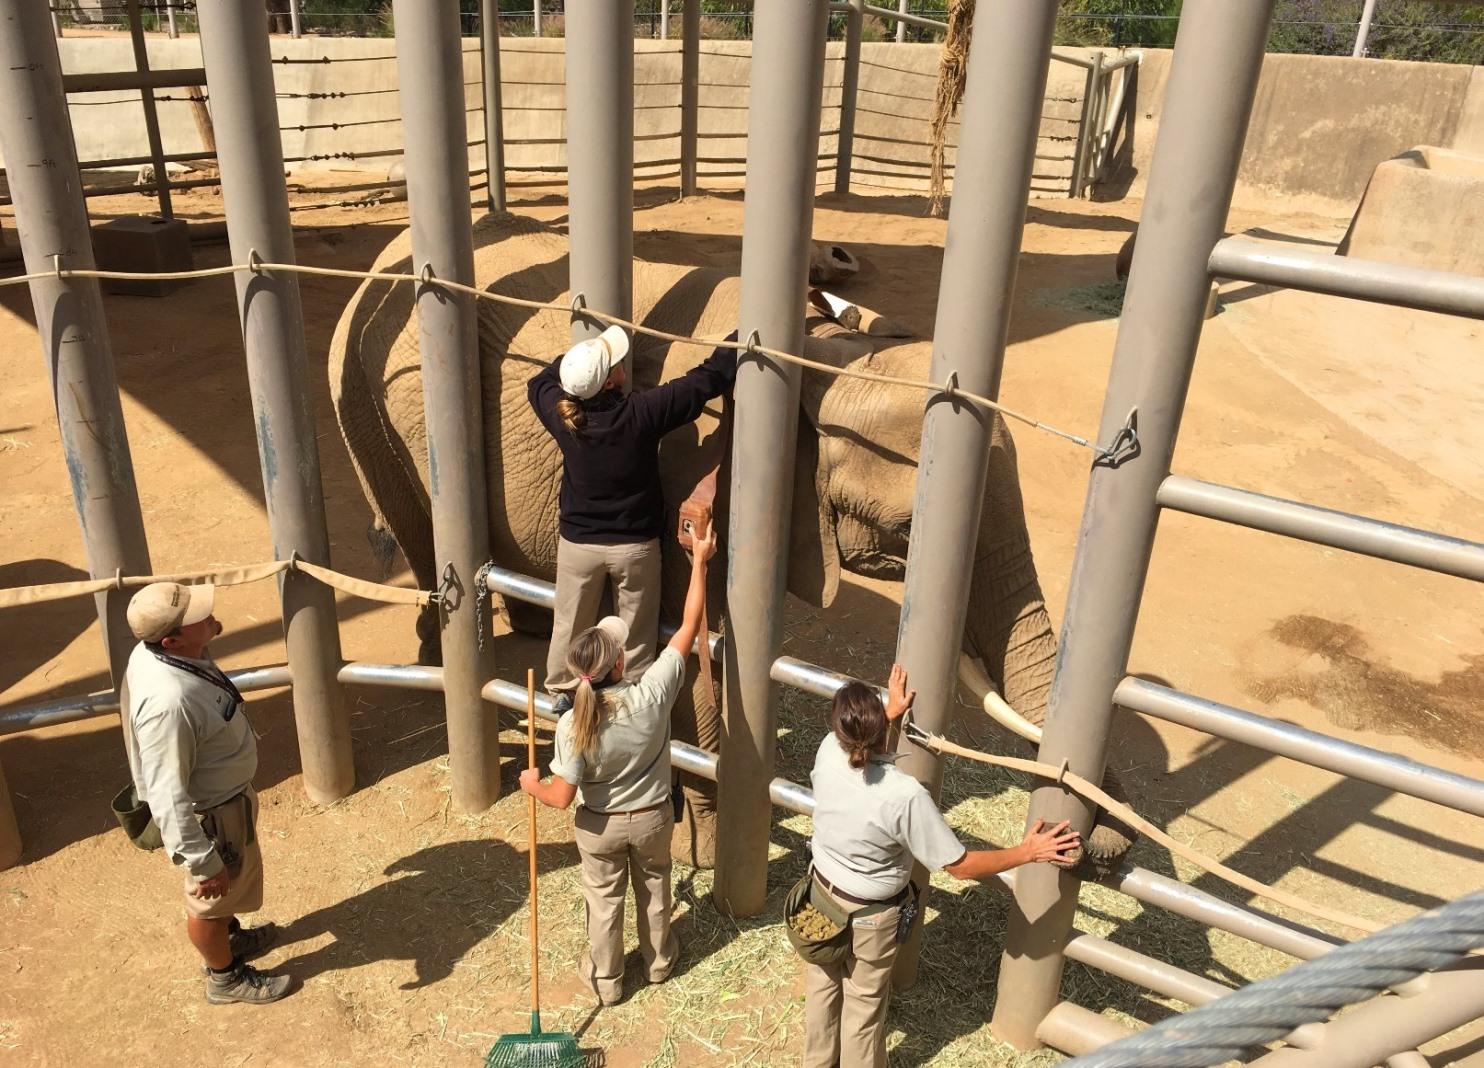 Installing the sensor at the San Diego Zoo. In the wild, this process will require tranquilizing the elephant before fitting the tracking collar.